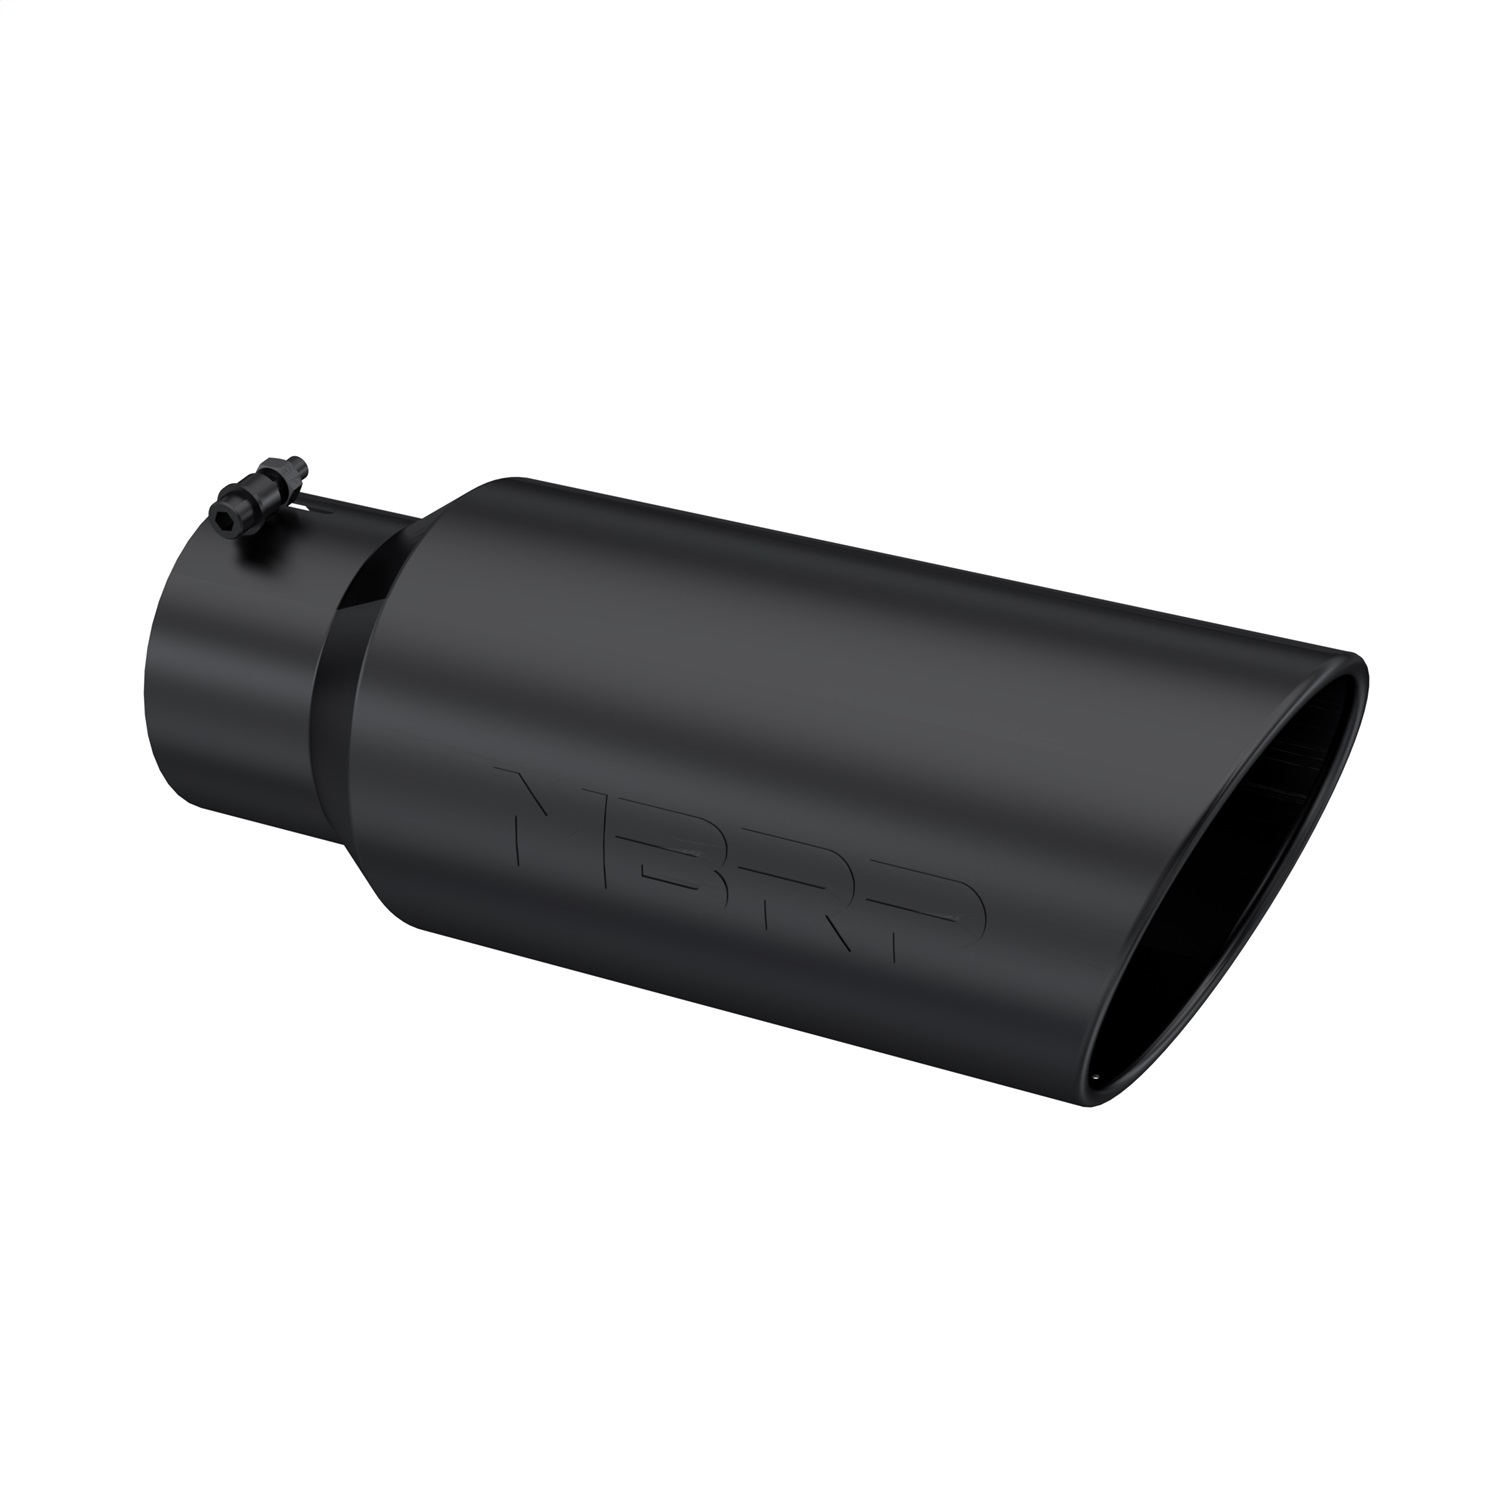 MBRP Exhaust Exhaust Tail Pipe Tip (T5127BLK)